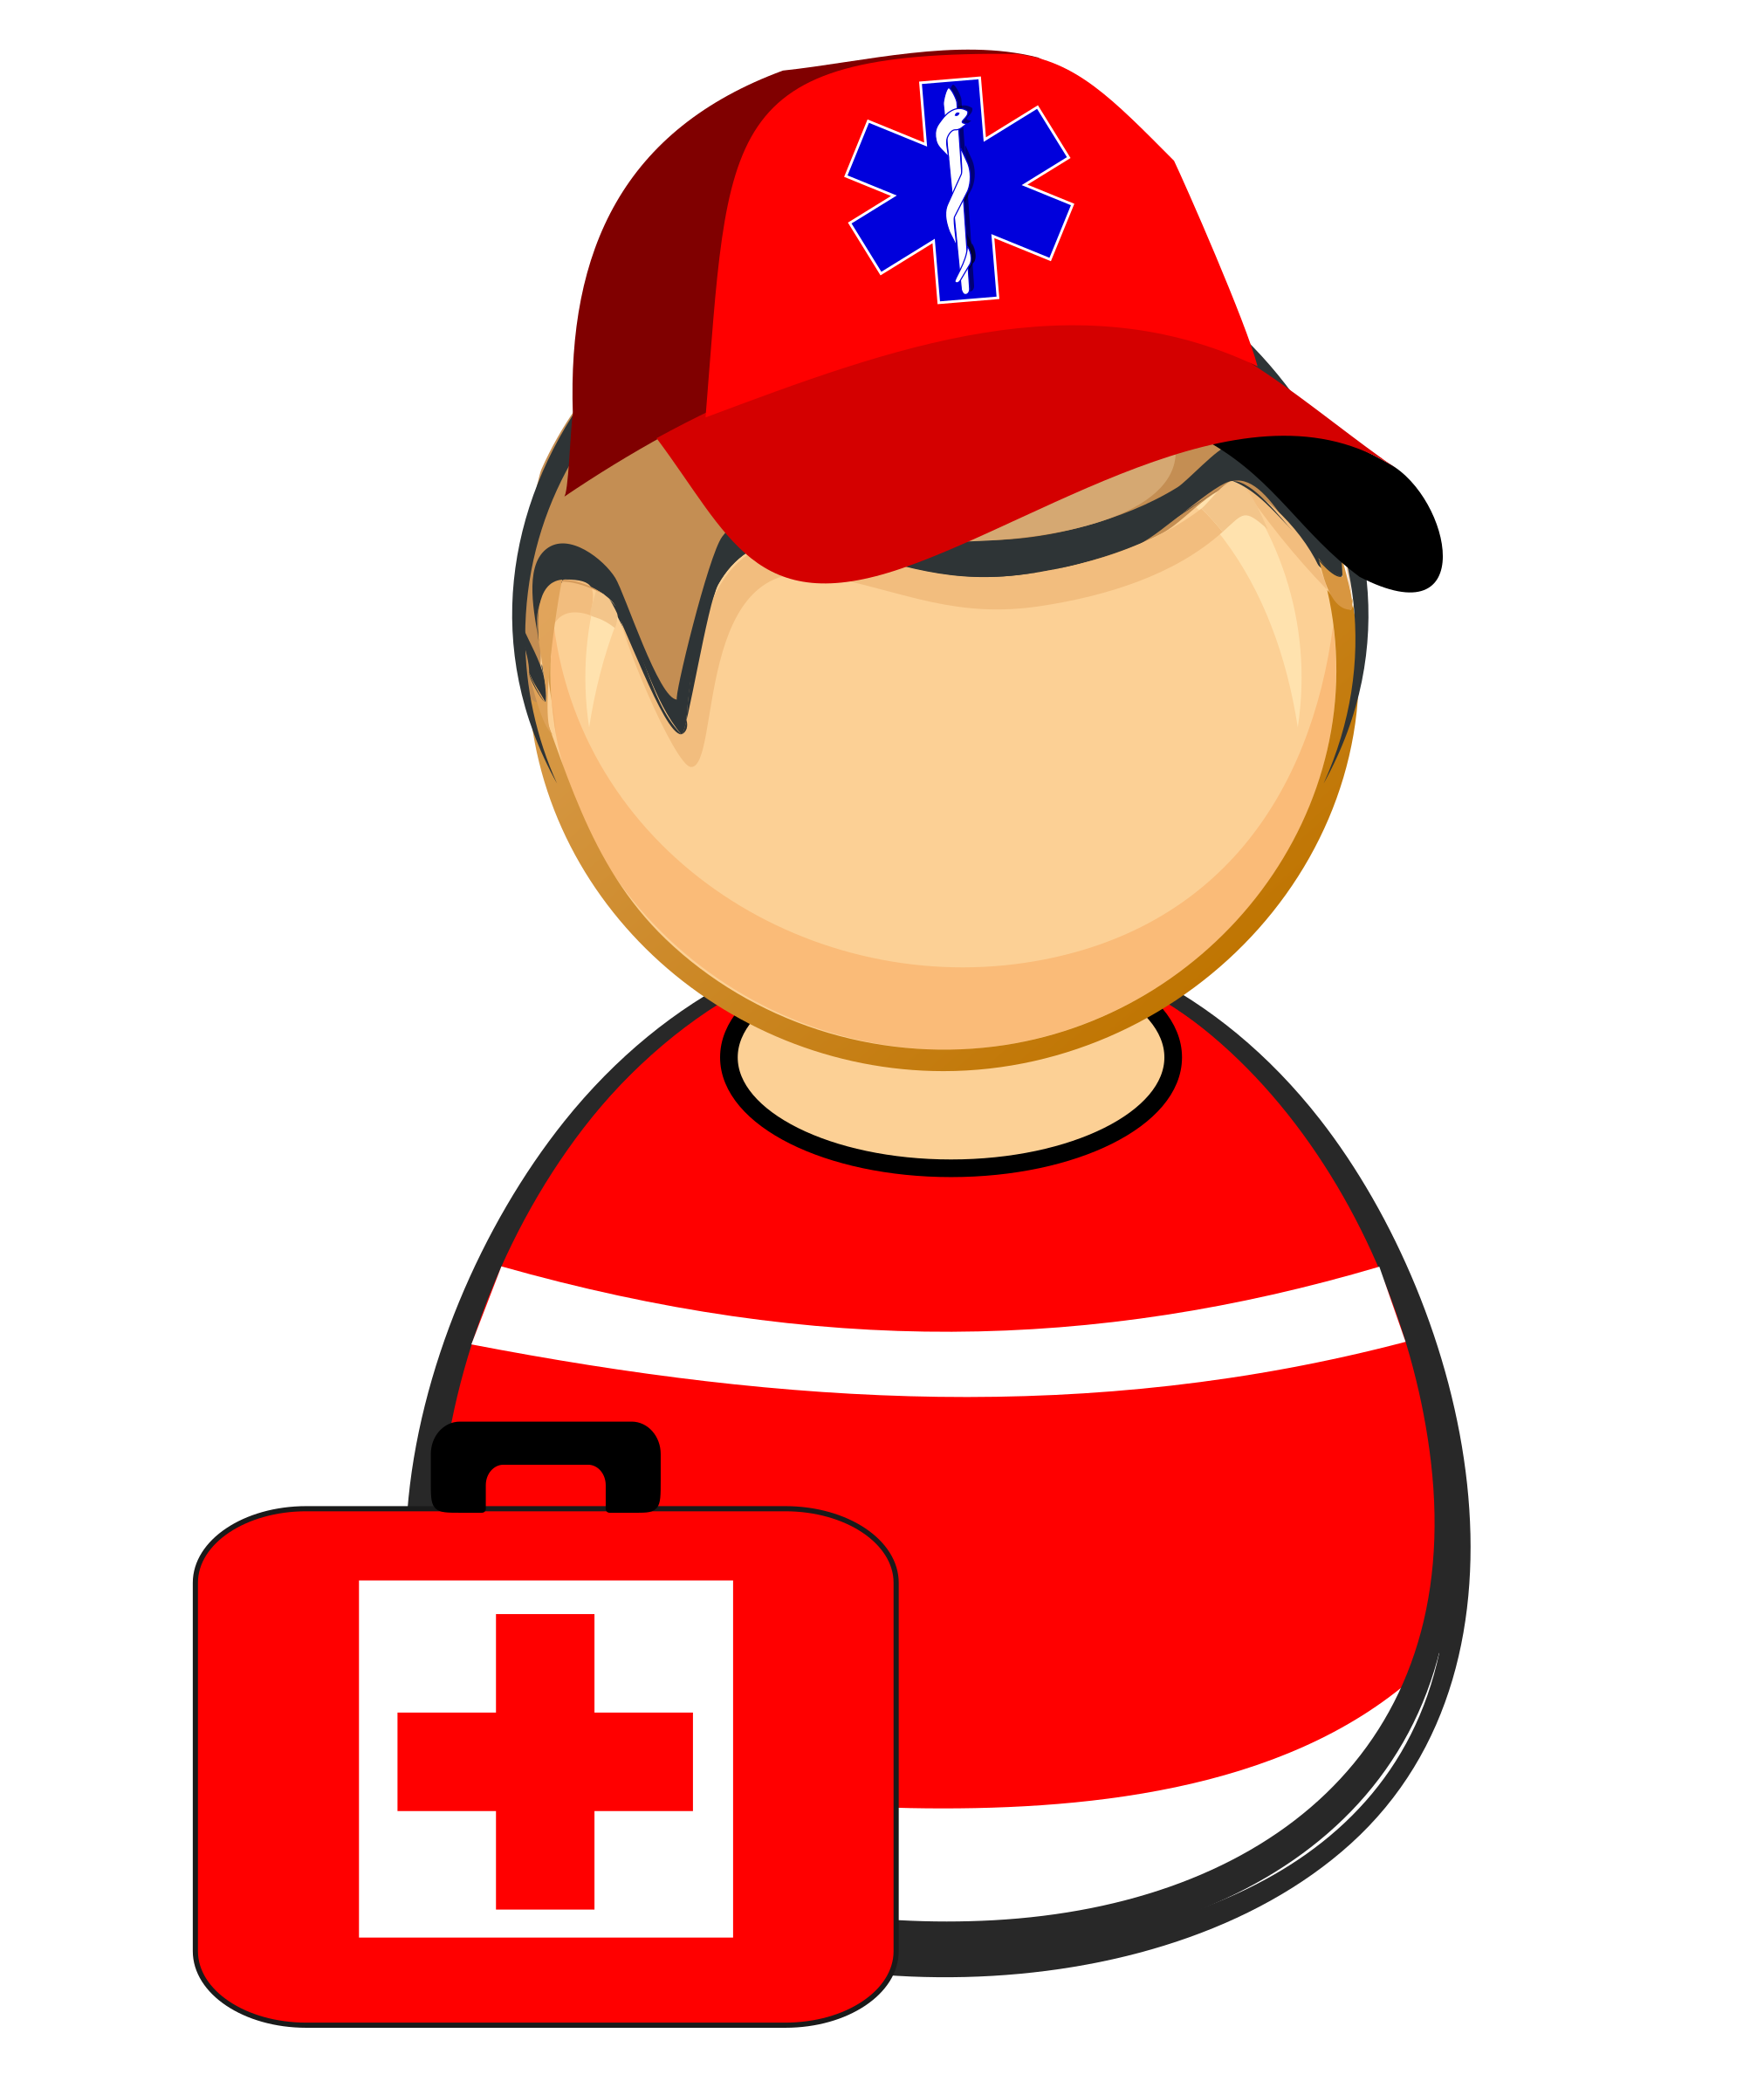 First responder - paramedic by Juhele